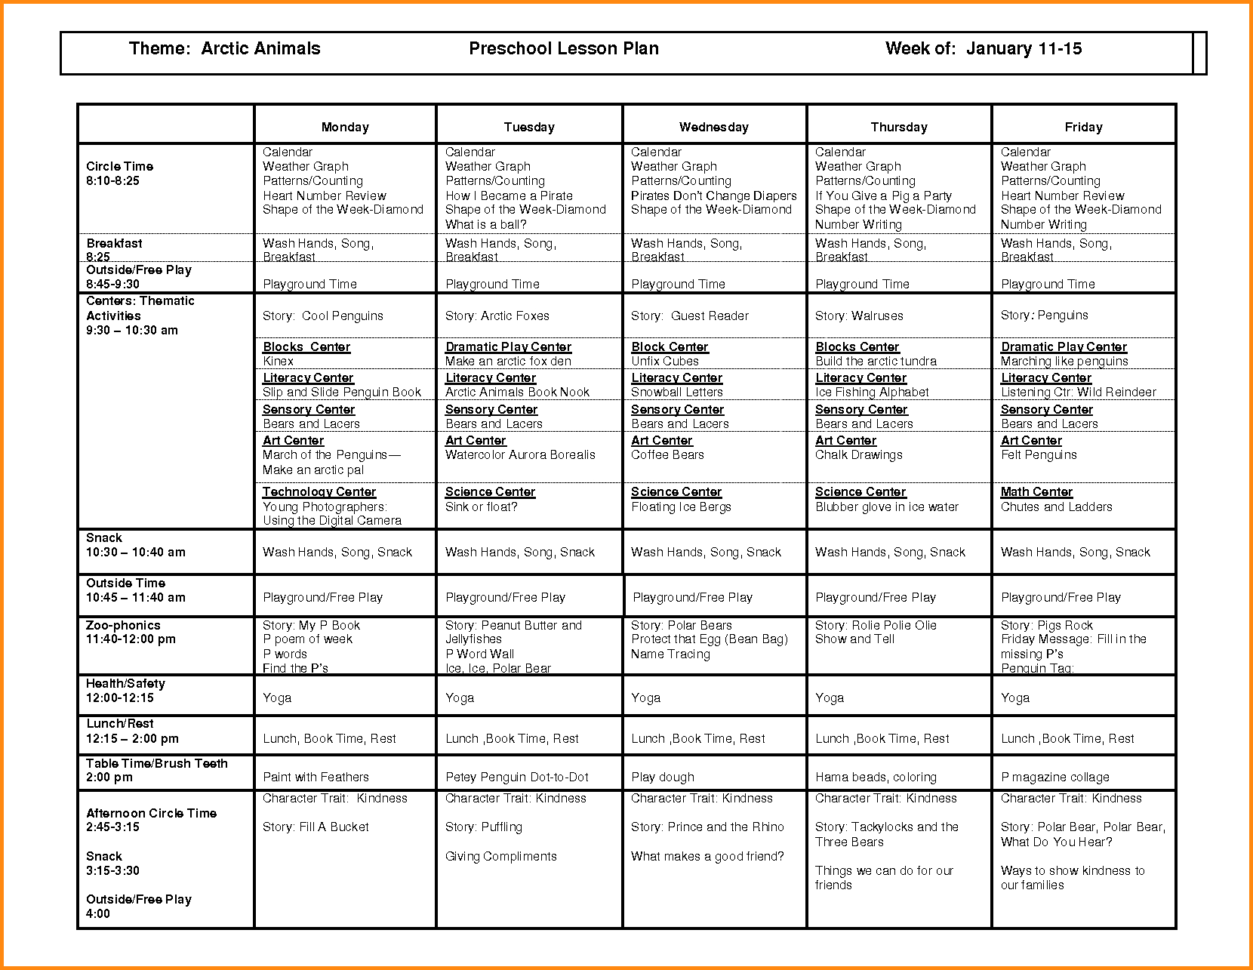 Spreadsheet Lesson Plans For High School | Laobing Kaisuo Throughout Spreadsheet Lesson Plans For High School